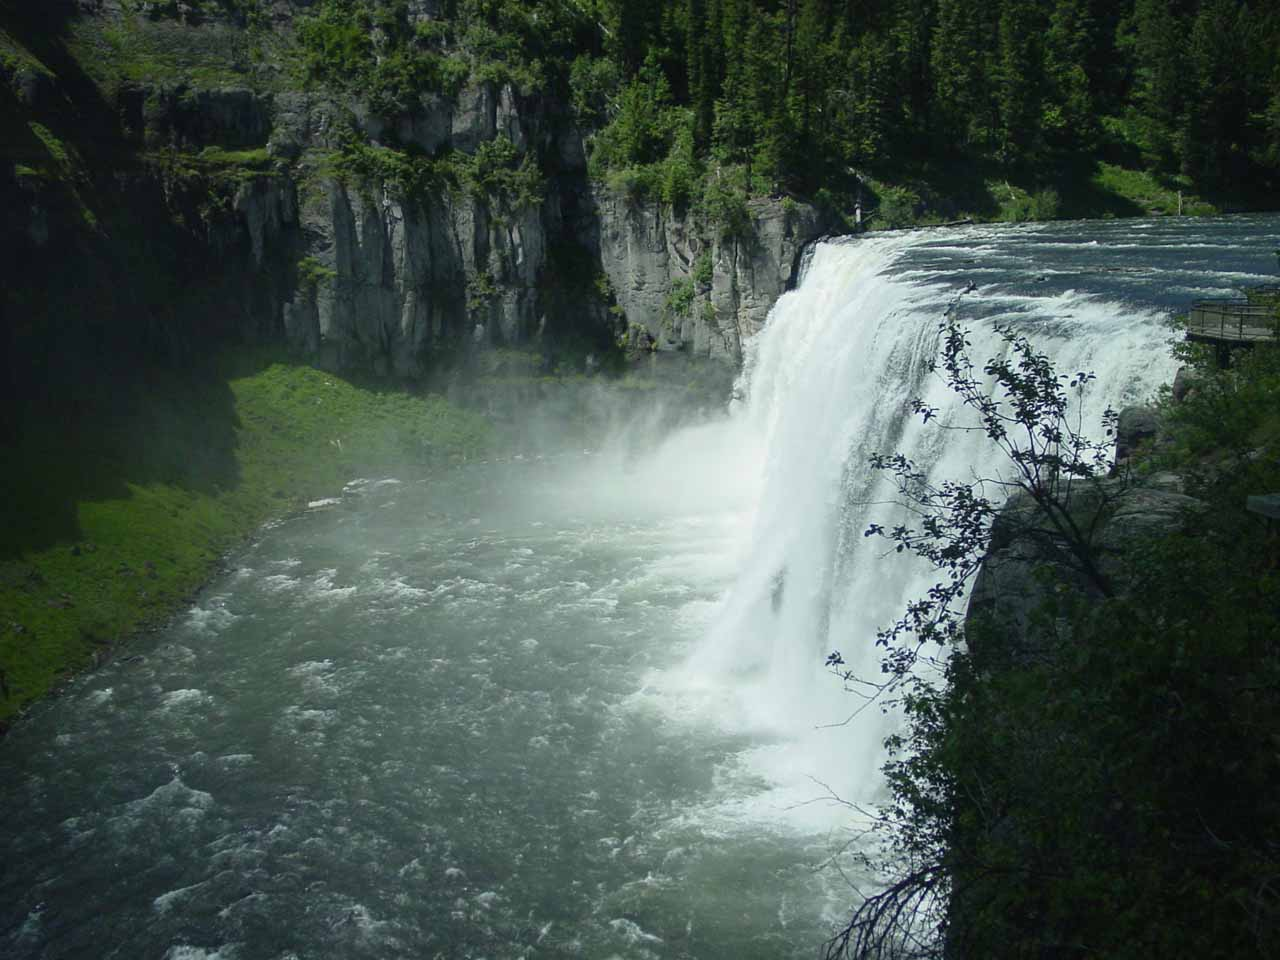 This was what the Upper Mesa Falls looked like back in June 2004